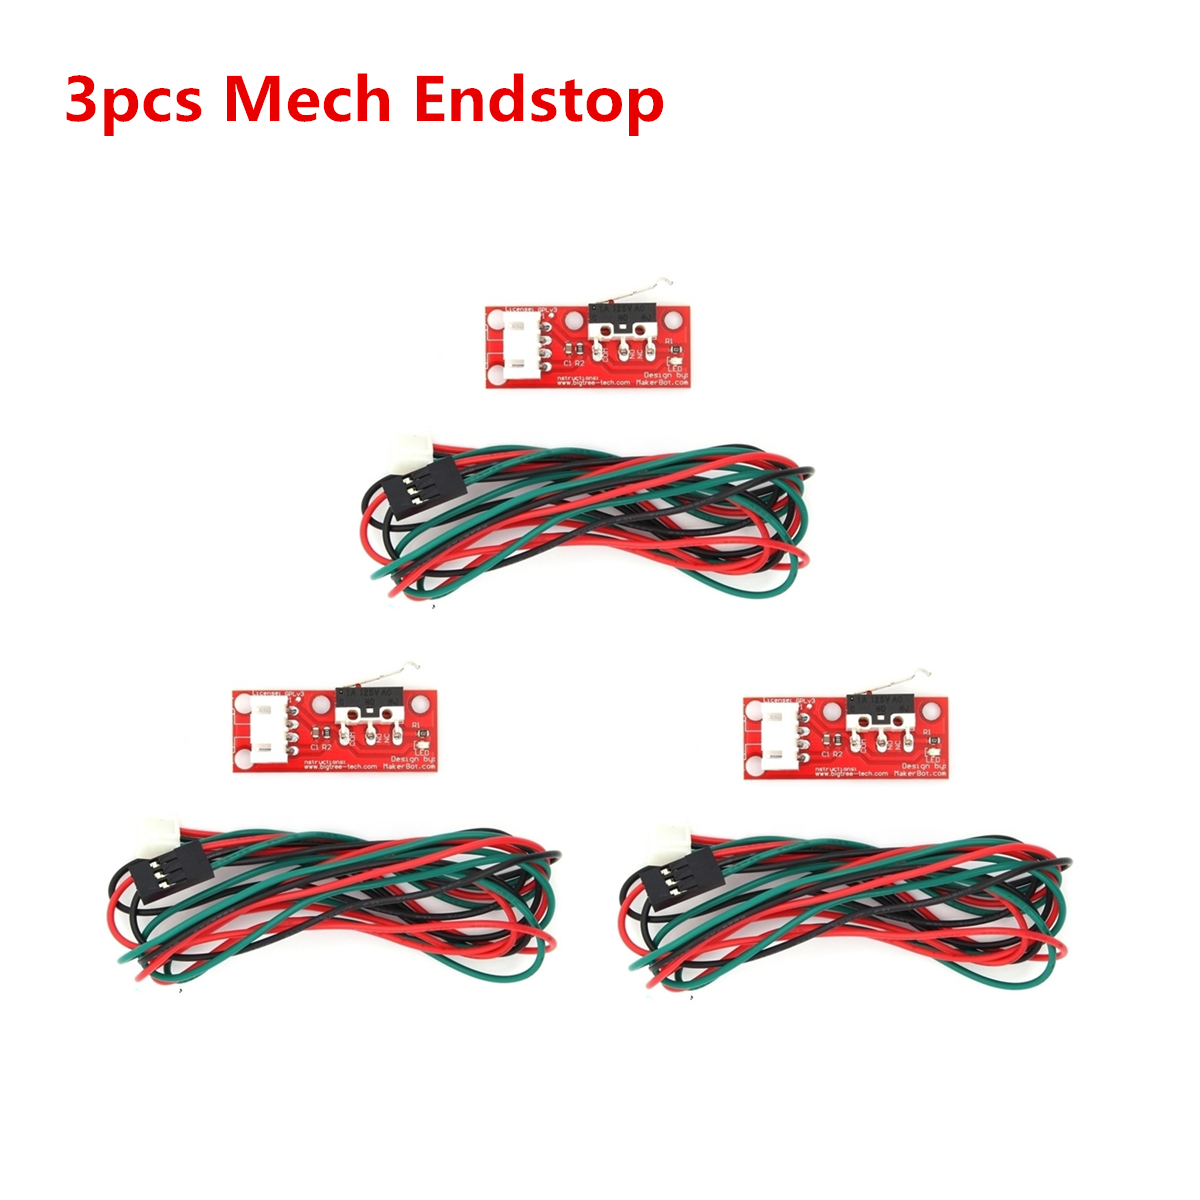 3Pcs 3D Printer parts Kossel Limit Switches Endstop with 3-feet Cable